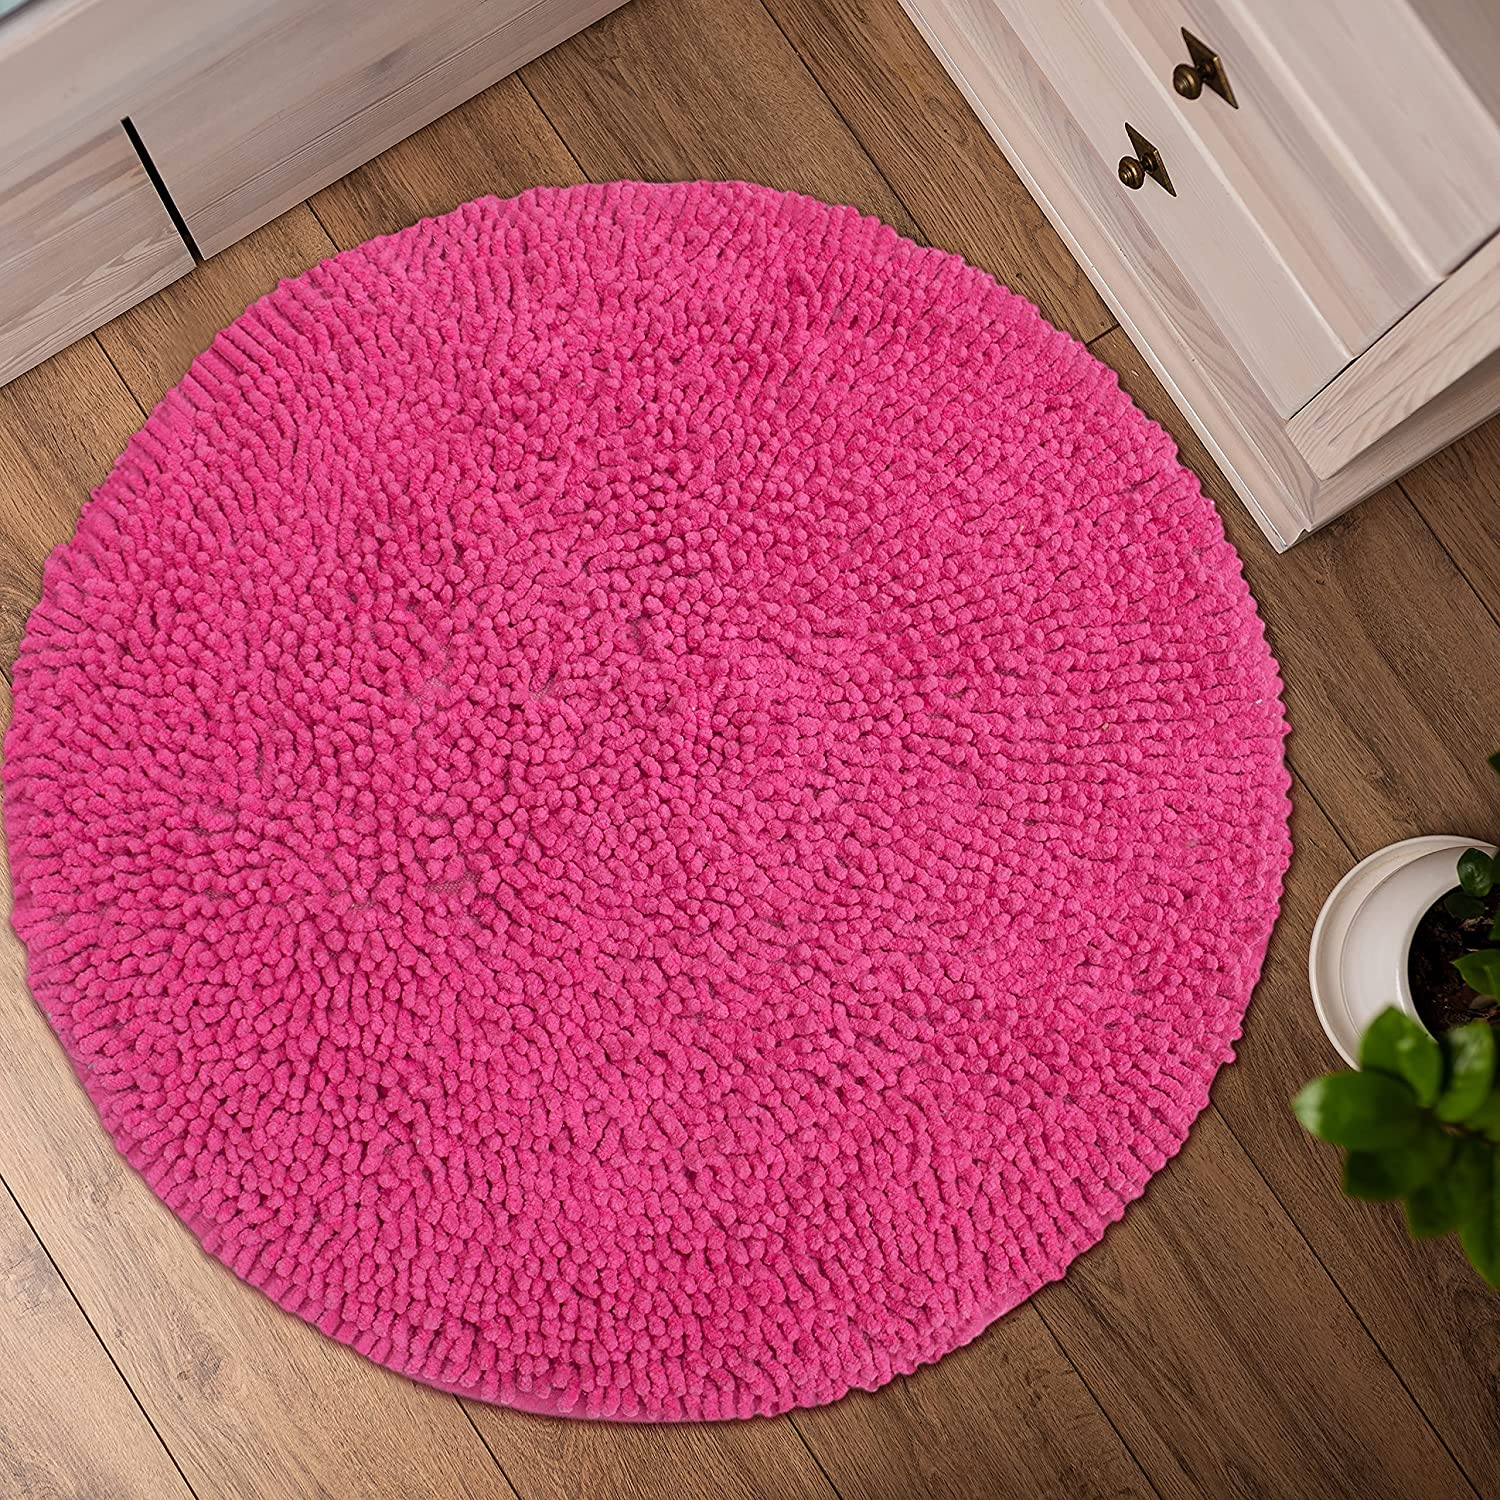 CHARDIN HOME Hot Pink Round Bath Mat   20 feet Boho Bathroom Rug   Also  Perfect for Kids Rooms, Nurseries, Bedside, dorms, Half Baths and Powder  Rooms ...